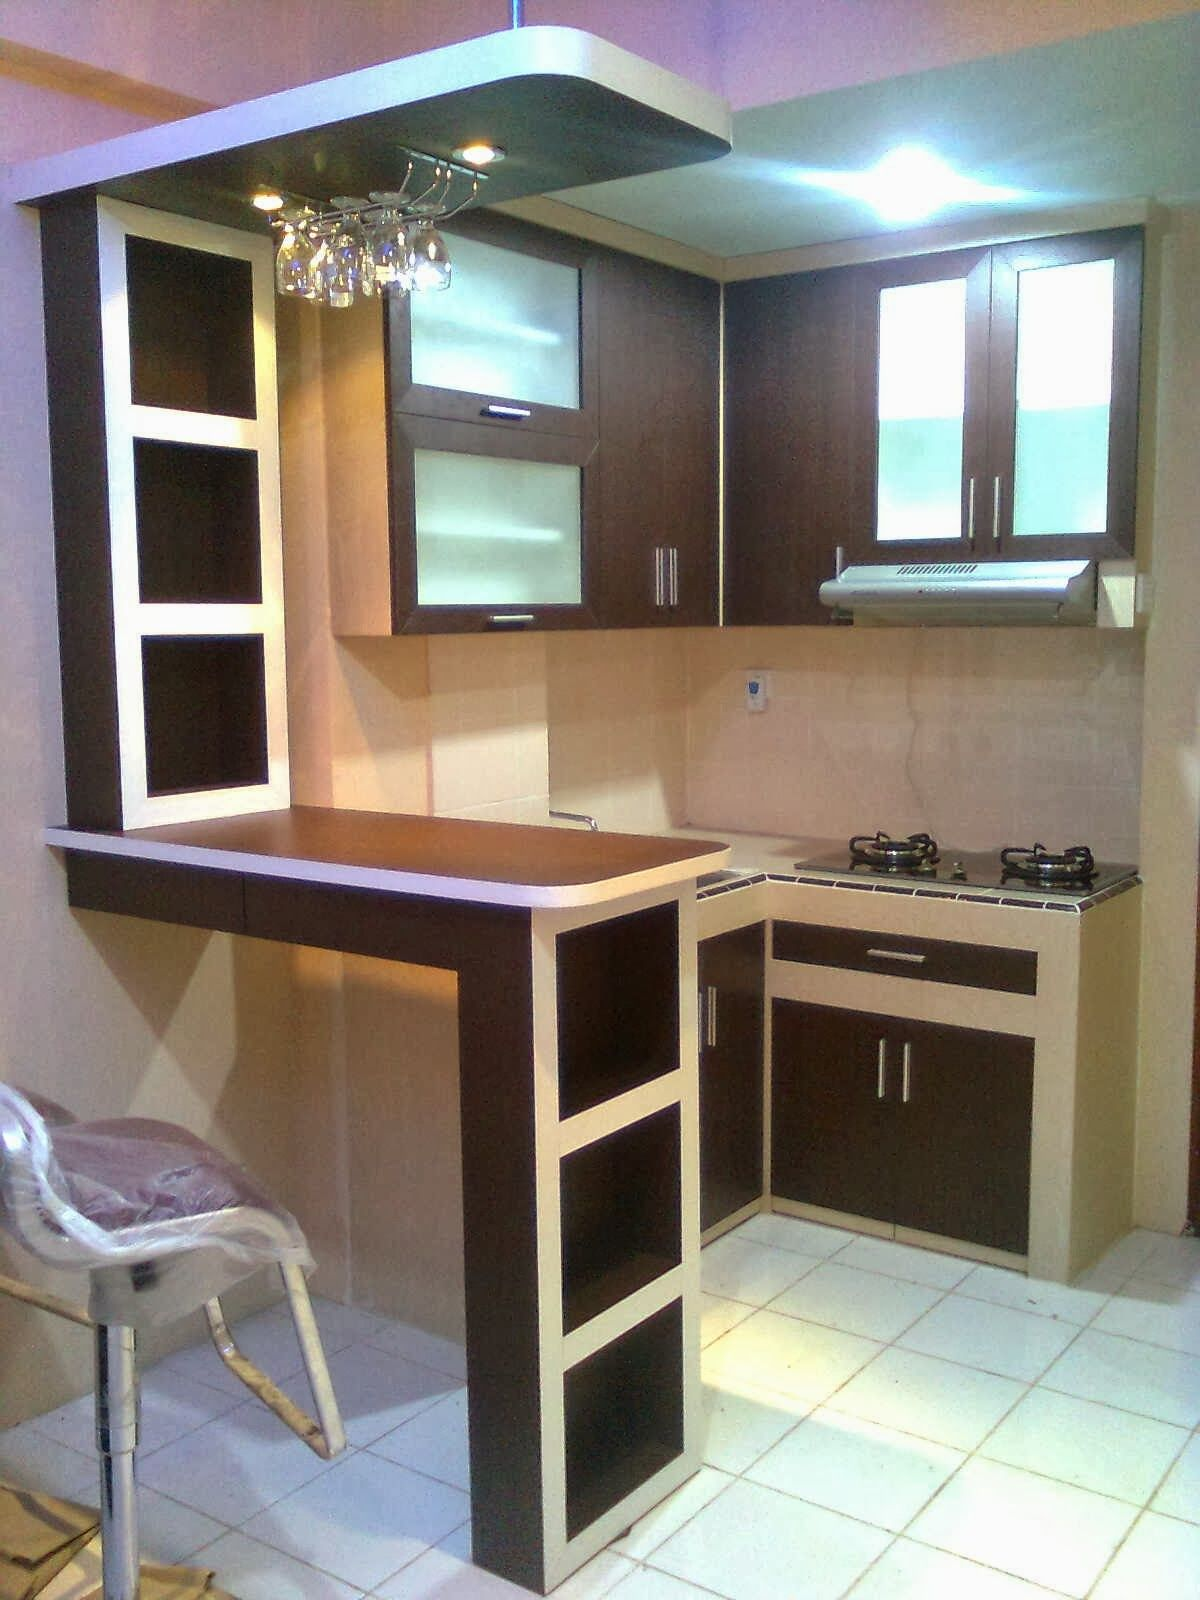 harga kitchen set per meter kitchen set pinterest